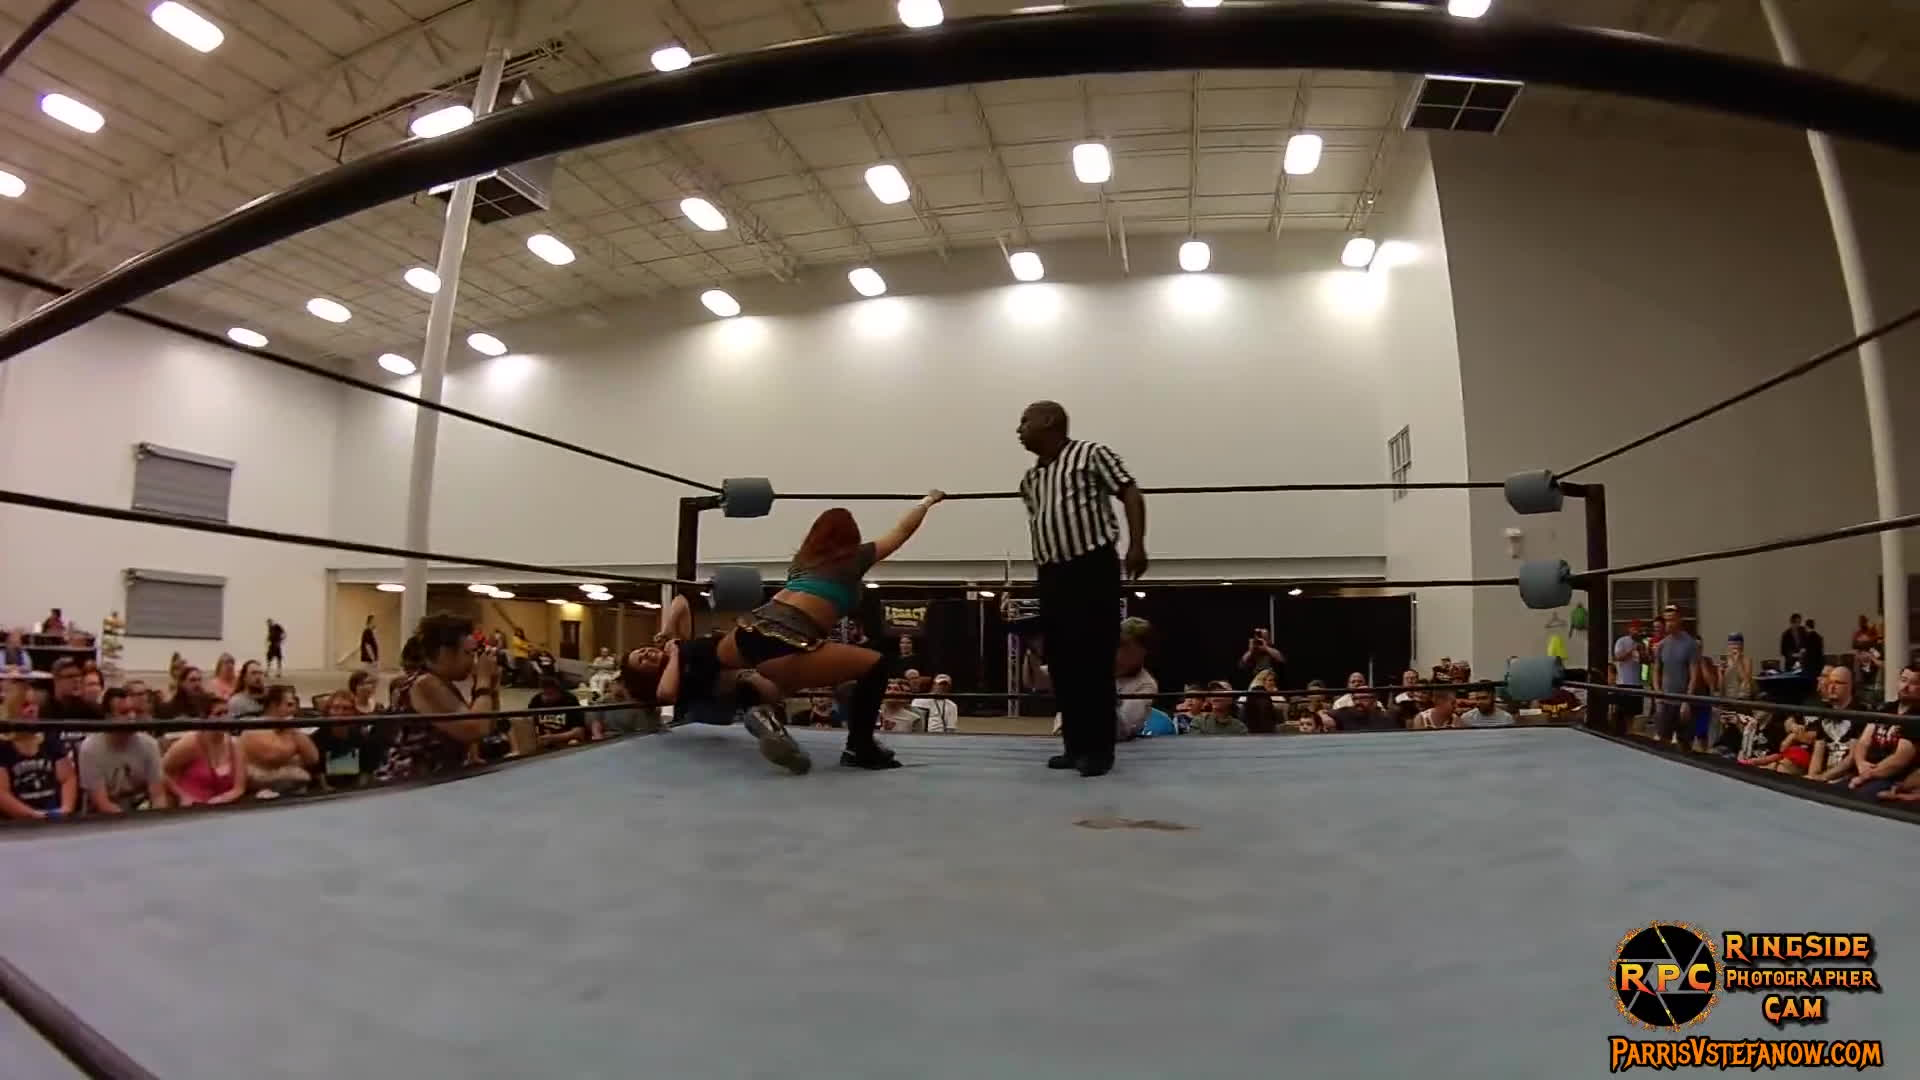 mickie james, parris v stefanow, ringside photographer cam, Veda Scott GIFs